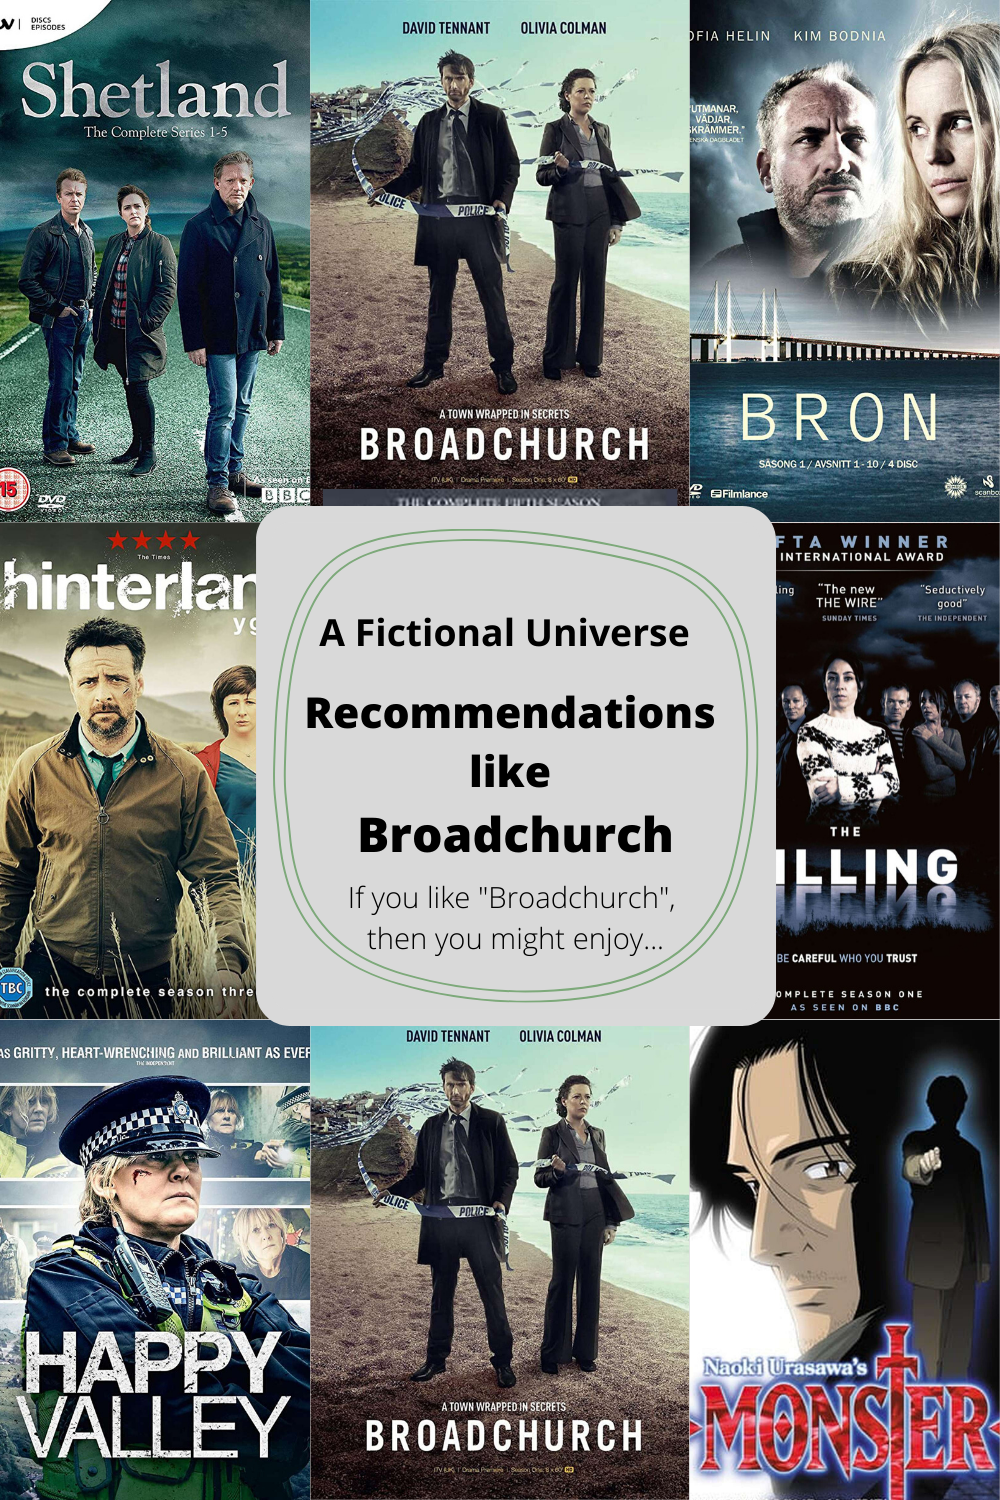 Broadchurch Similar Recommendation Article Image